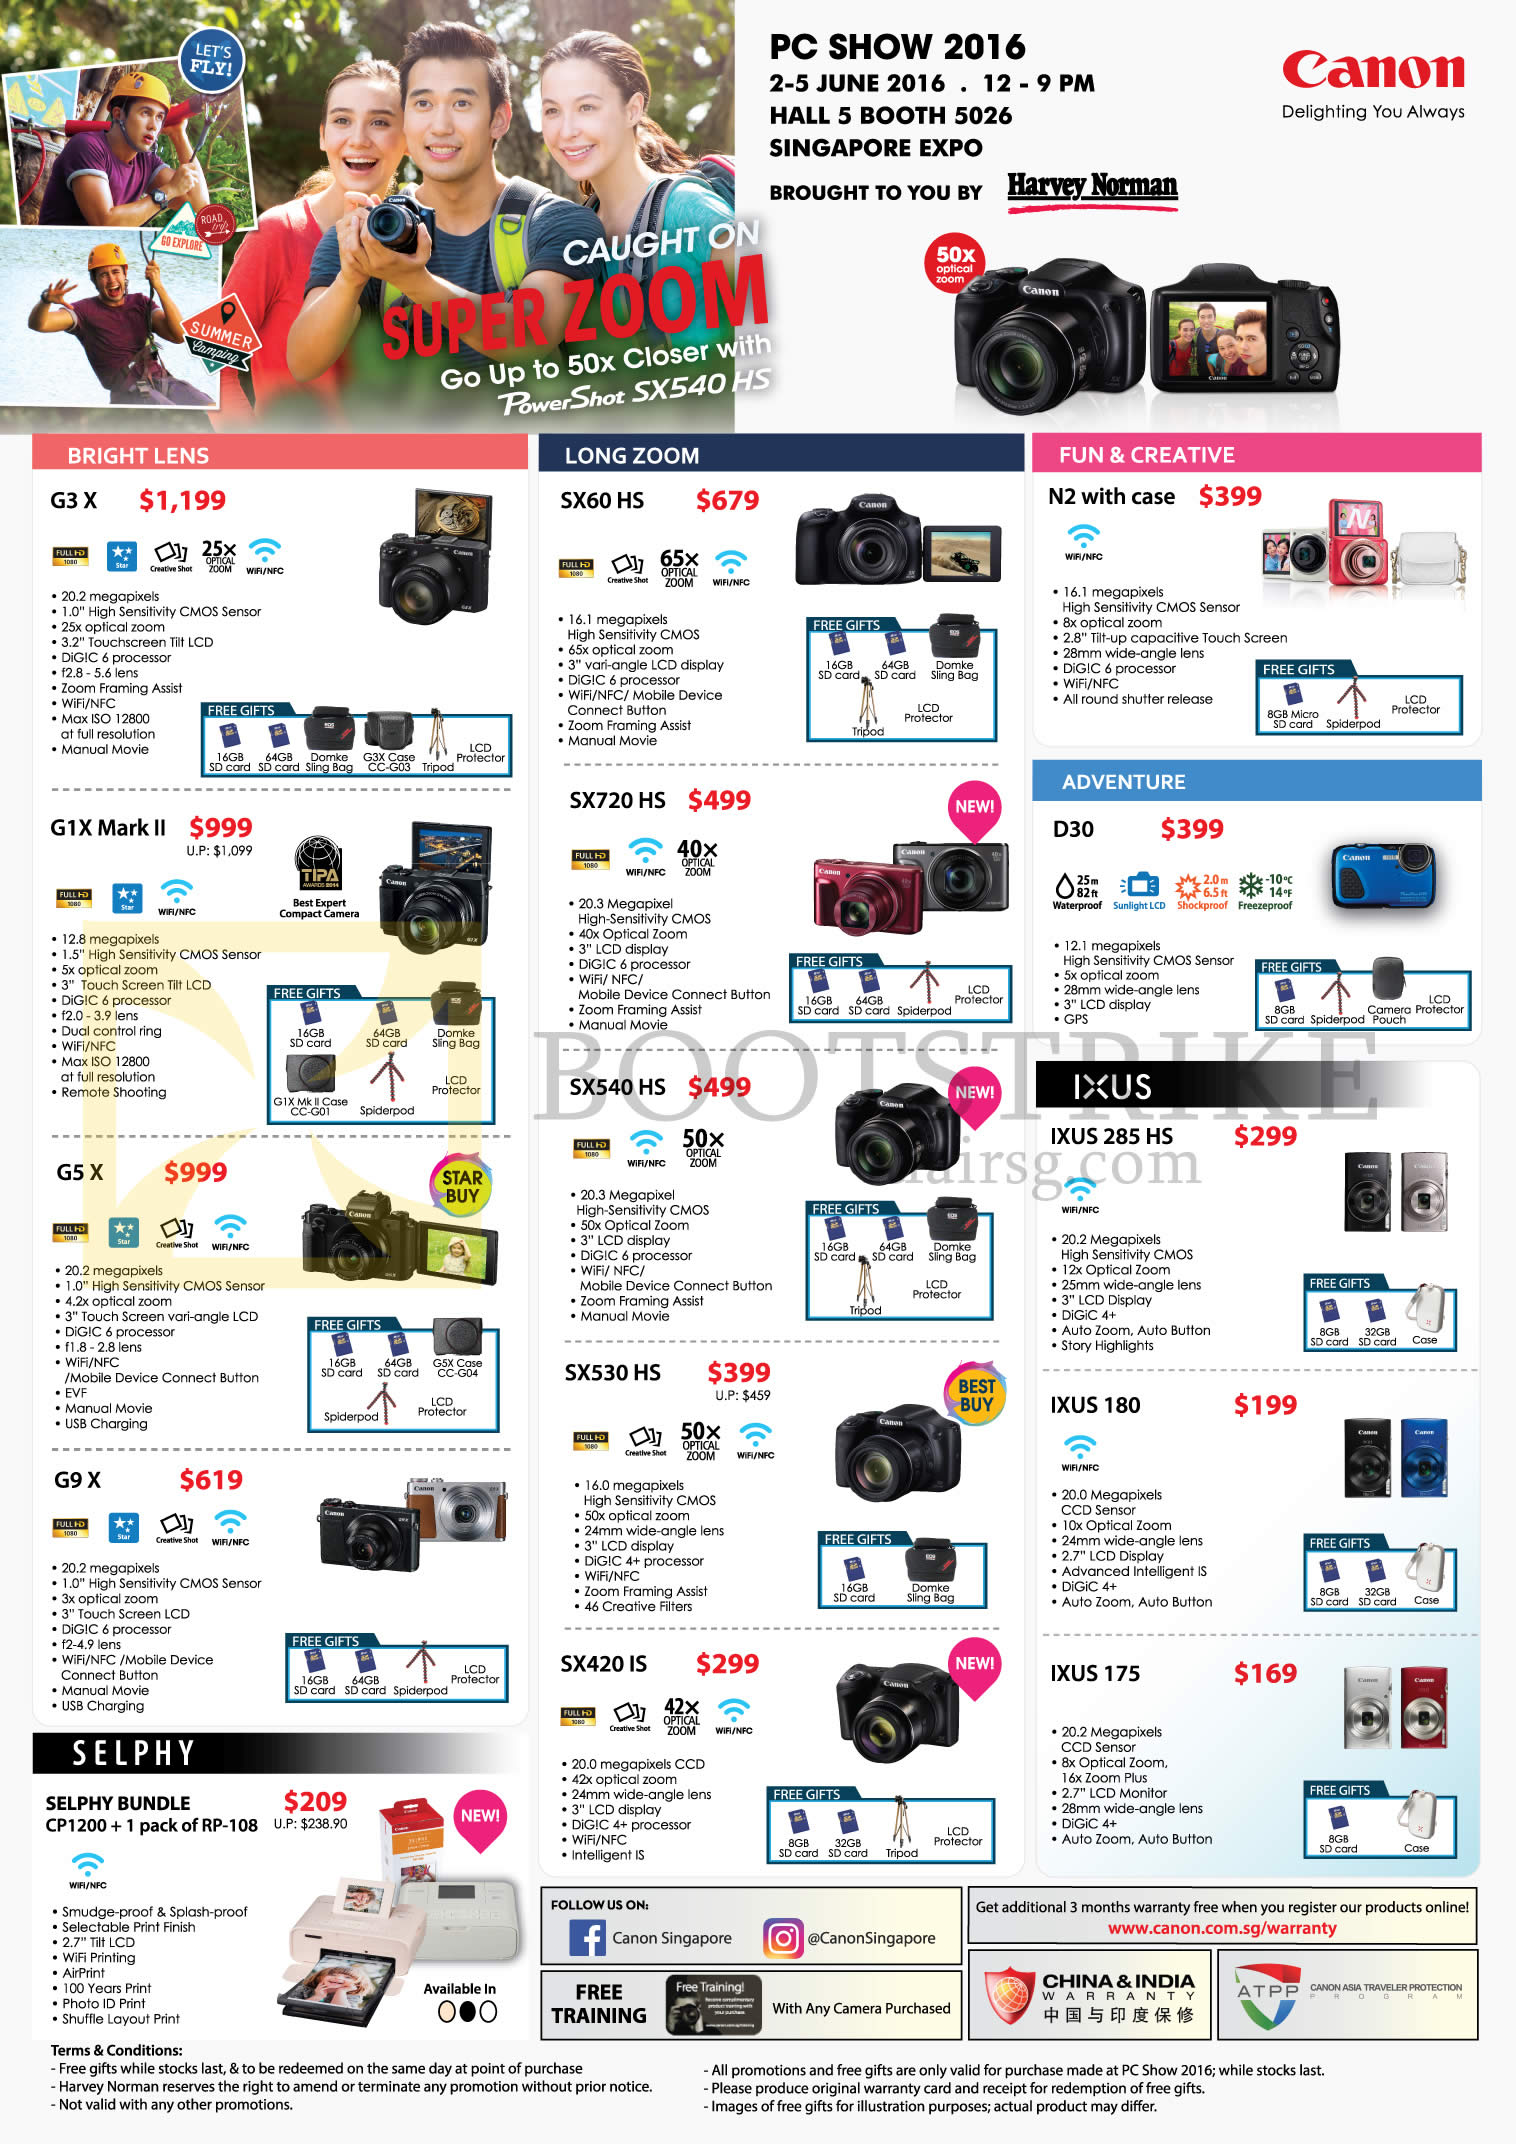 PC SHOW 2016 price list image brochure of Canon Digital Cameras Powershot G3 X, N2, G1X Mark II, GS X, G9 X, Selphy CP1200, SX60 HS, SX720HS, SX540 HS, SX530 HS, SX 420 IS, D30, IXUS 180, 175